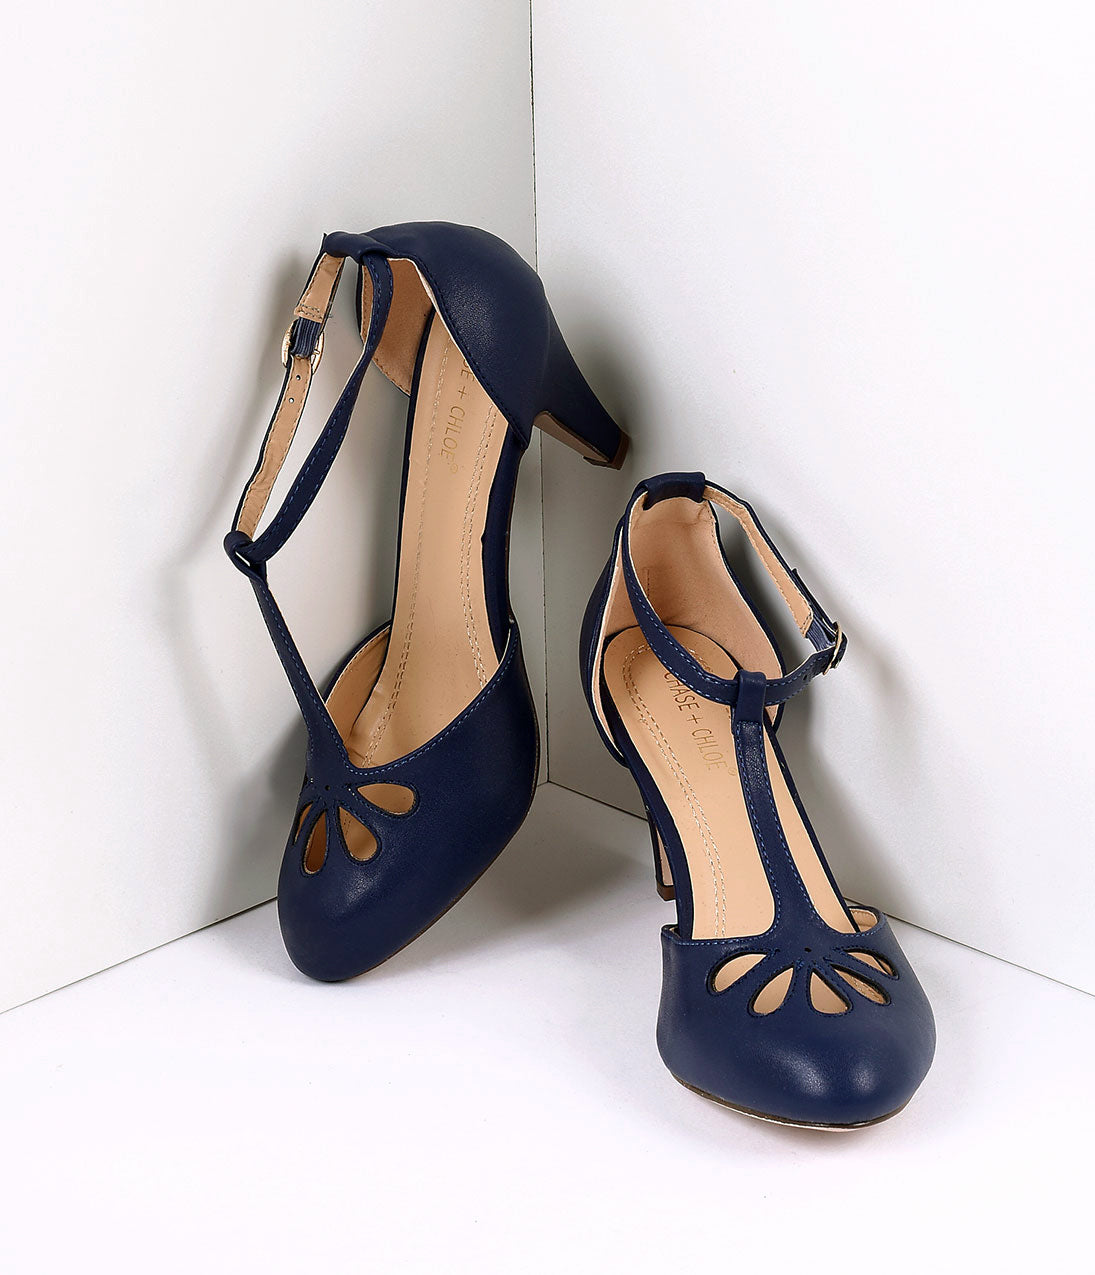 Rockabilly Shoes- Heels, Pumps, Boots, Flats Navy Blue Pleather Cutout Kimmy T-Strap Heels $44.00 AT vintagedancer.com